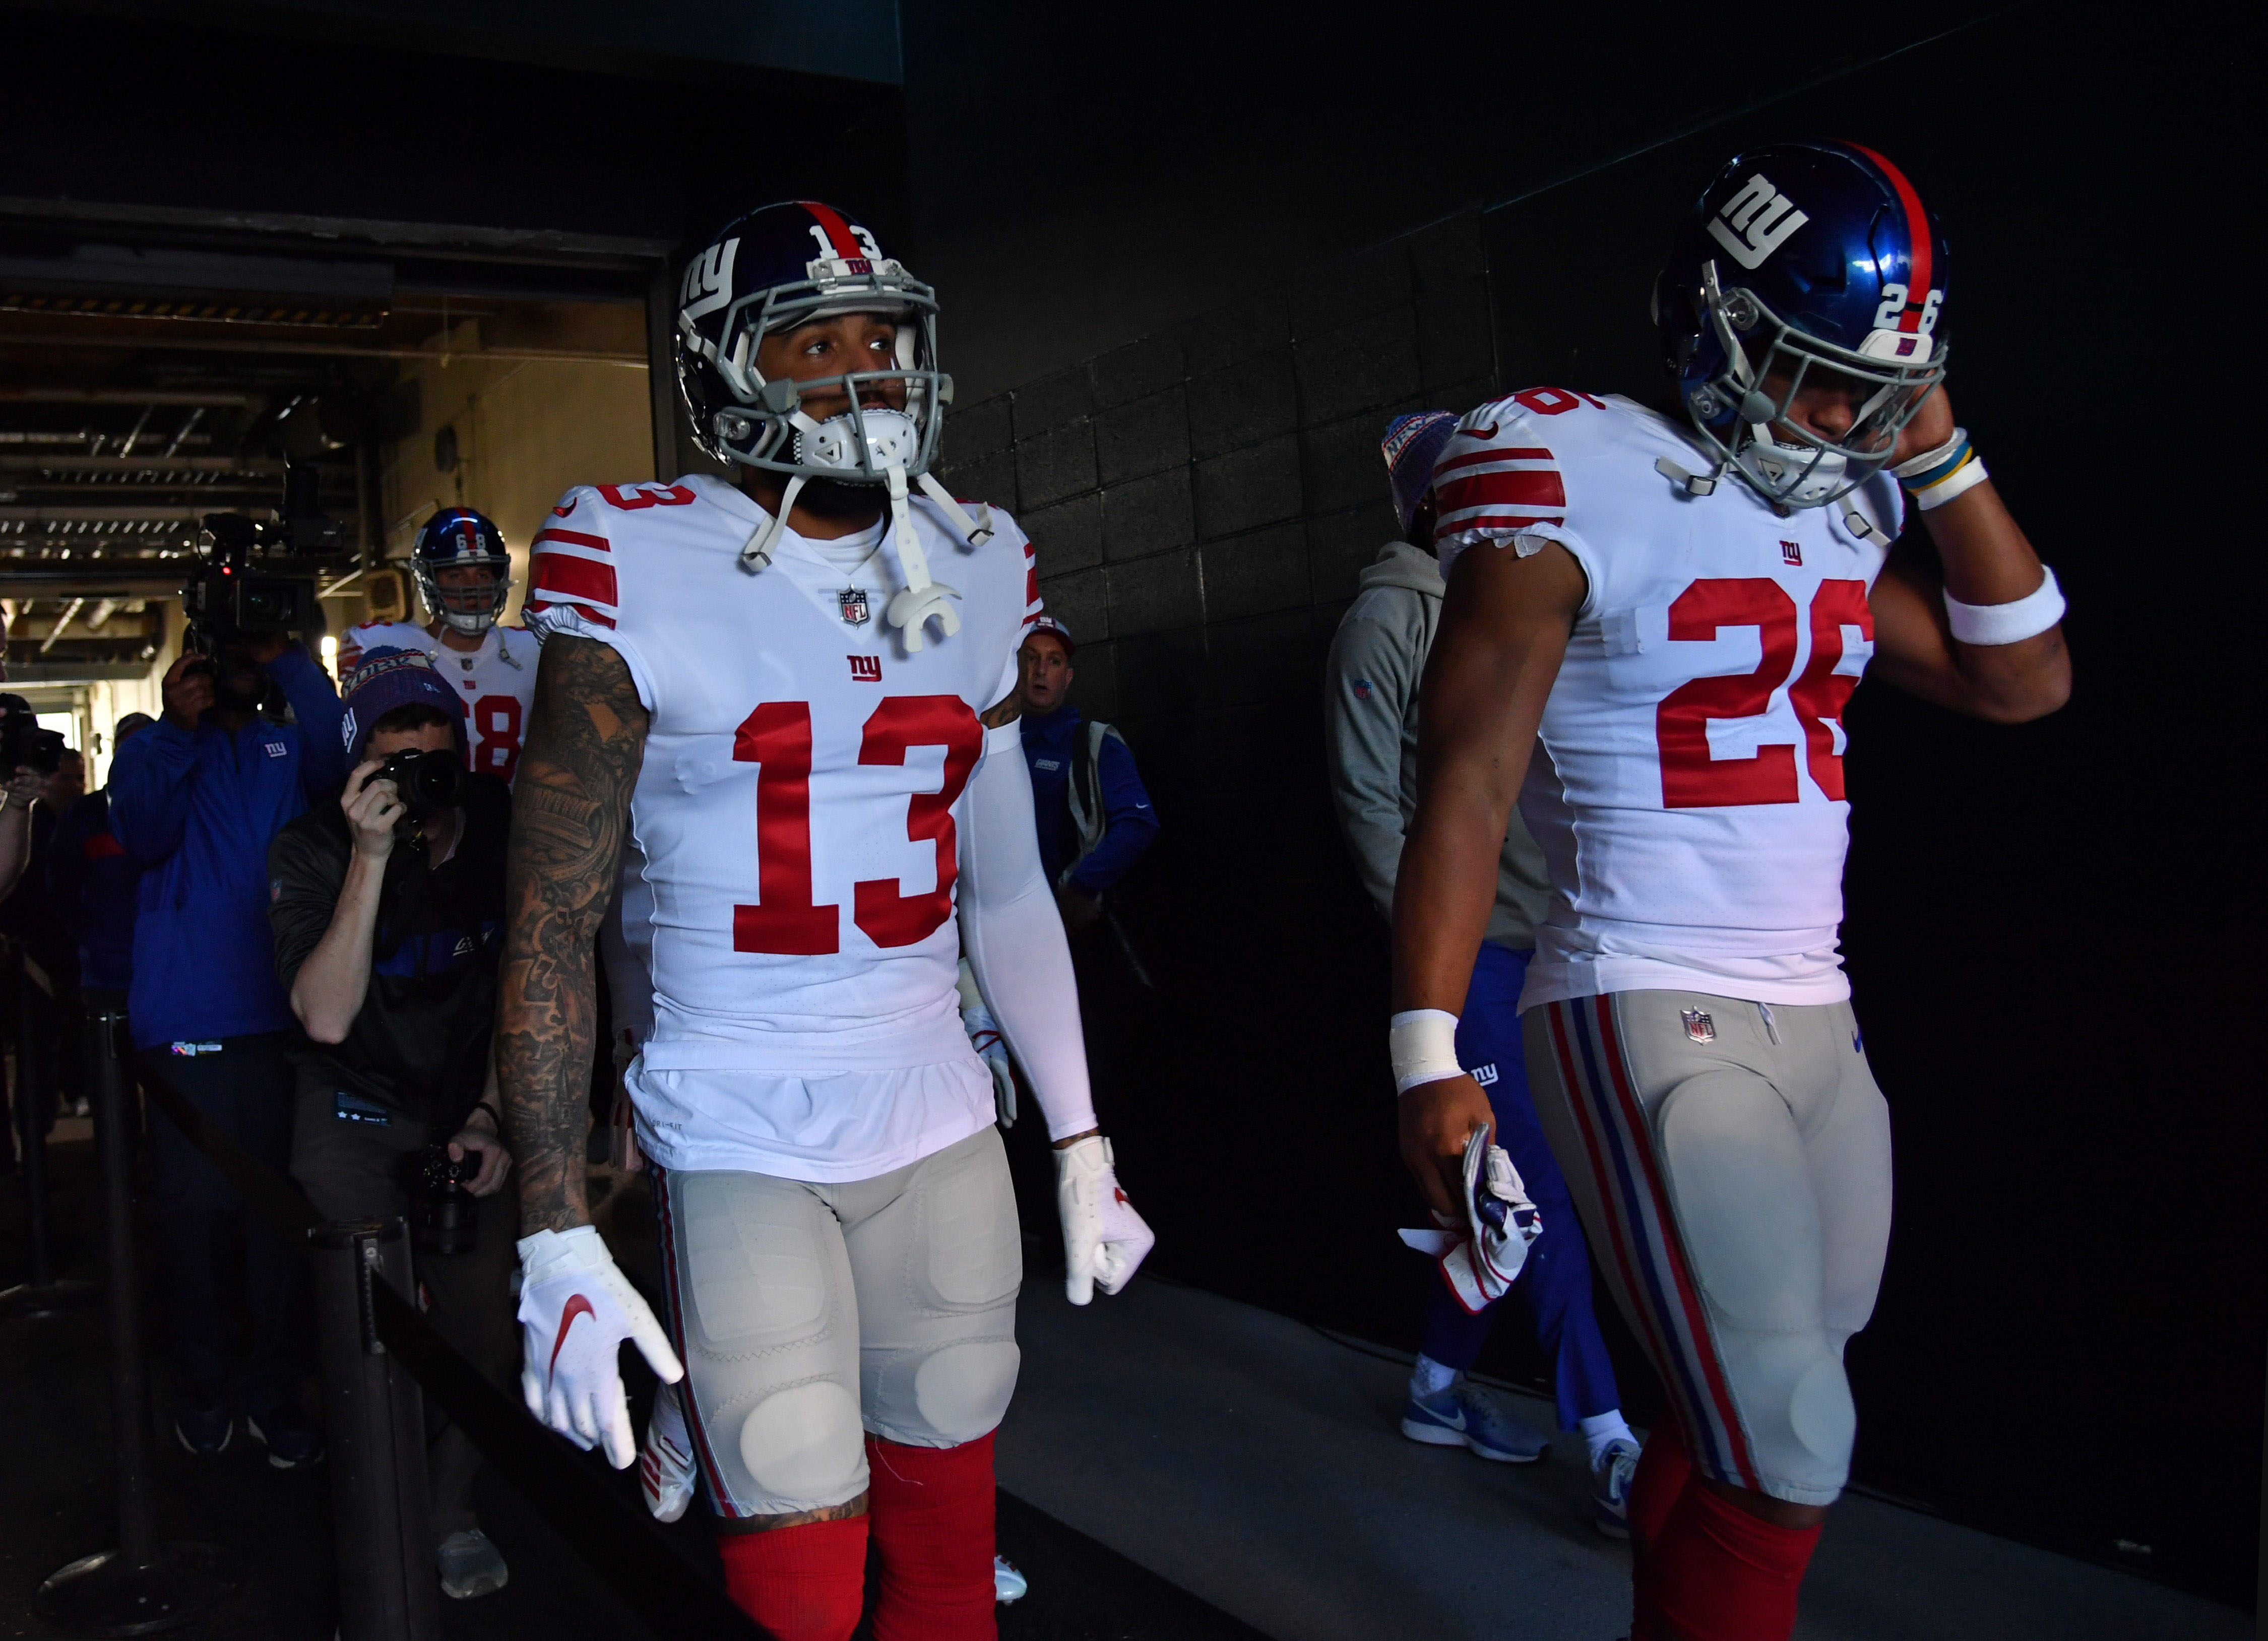 Saquon Barkley reveals Odell Beckham wasn't initially happy about the trade